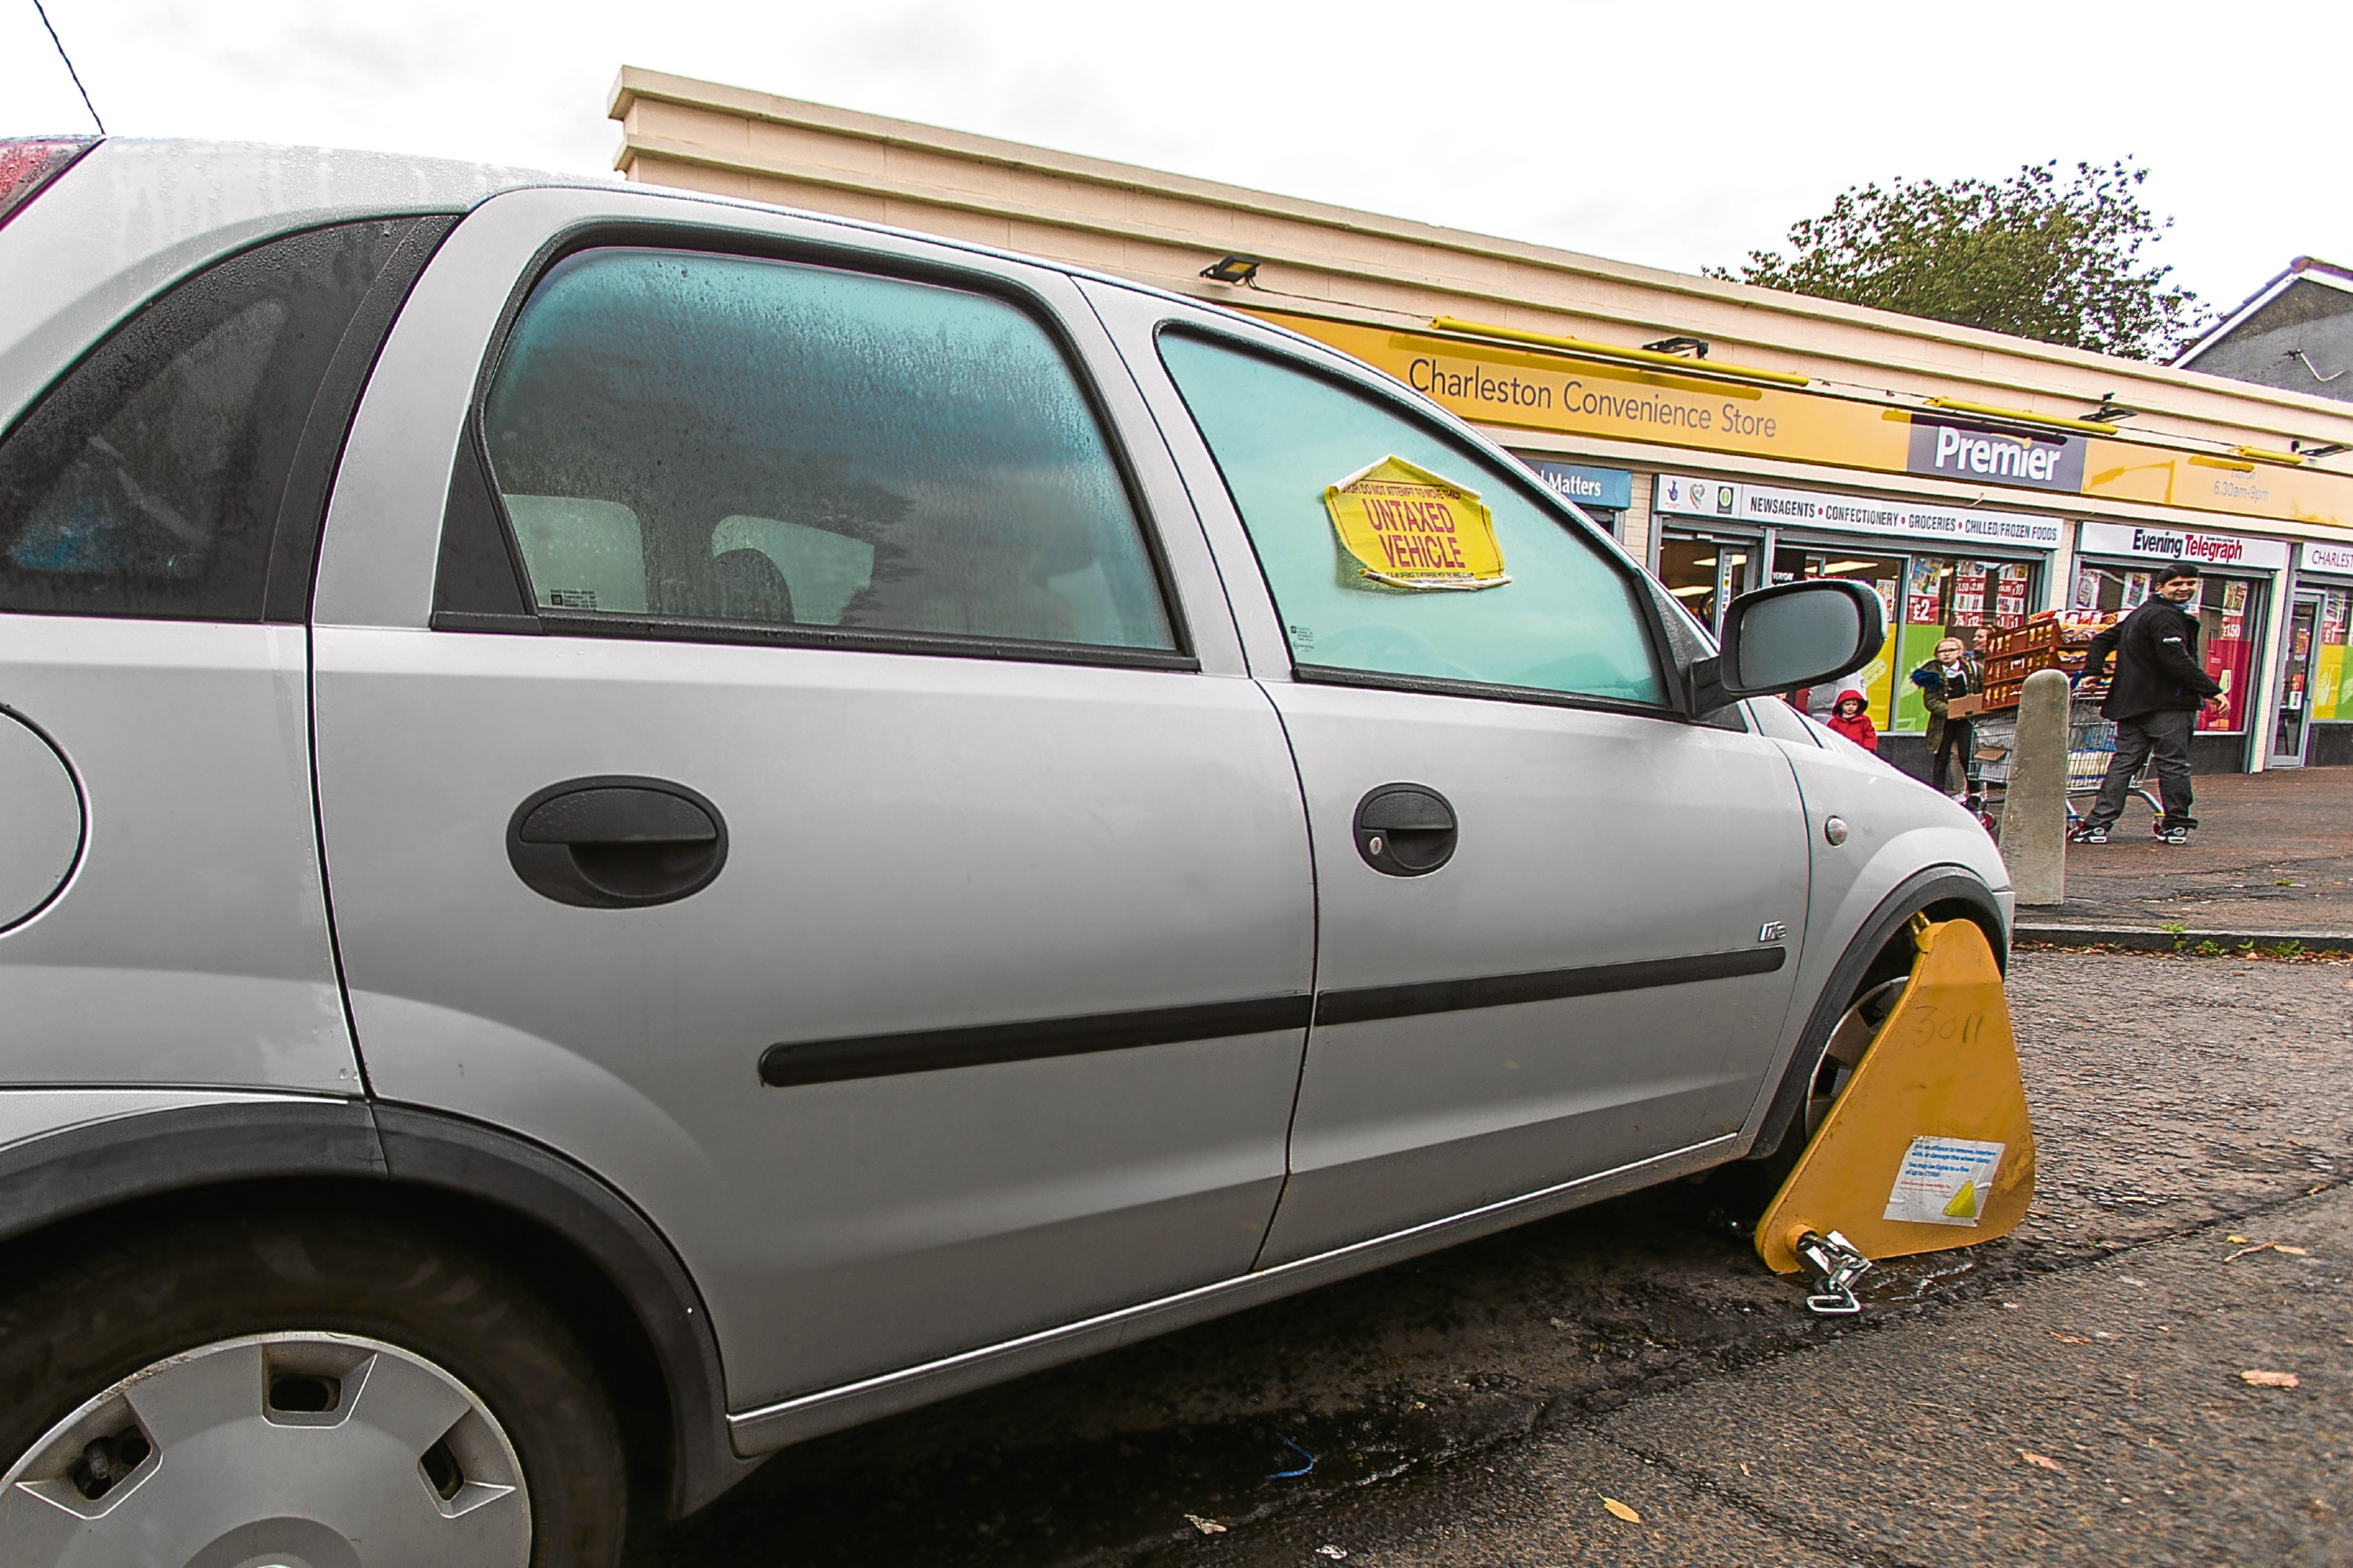 A car in Charleston which was clamped as part of the enforcement action.